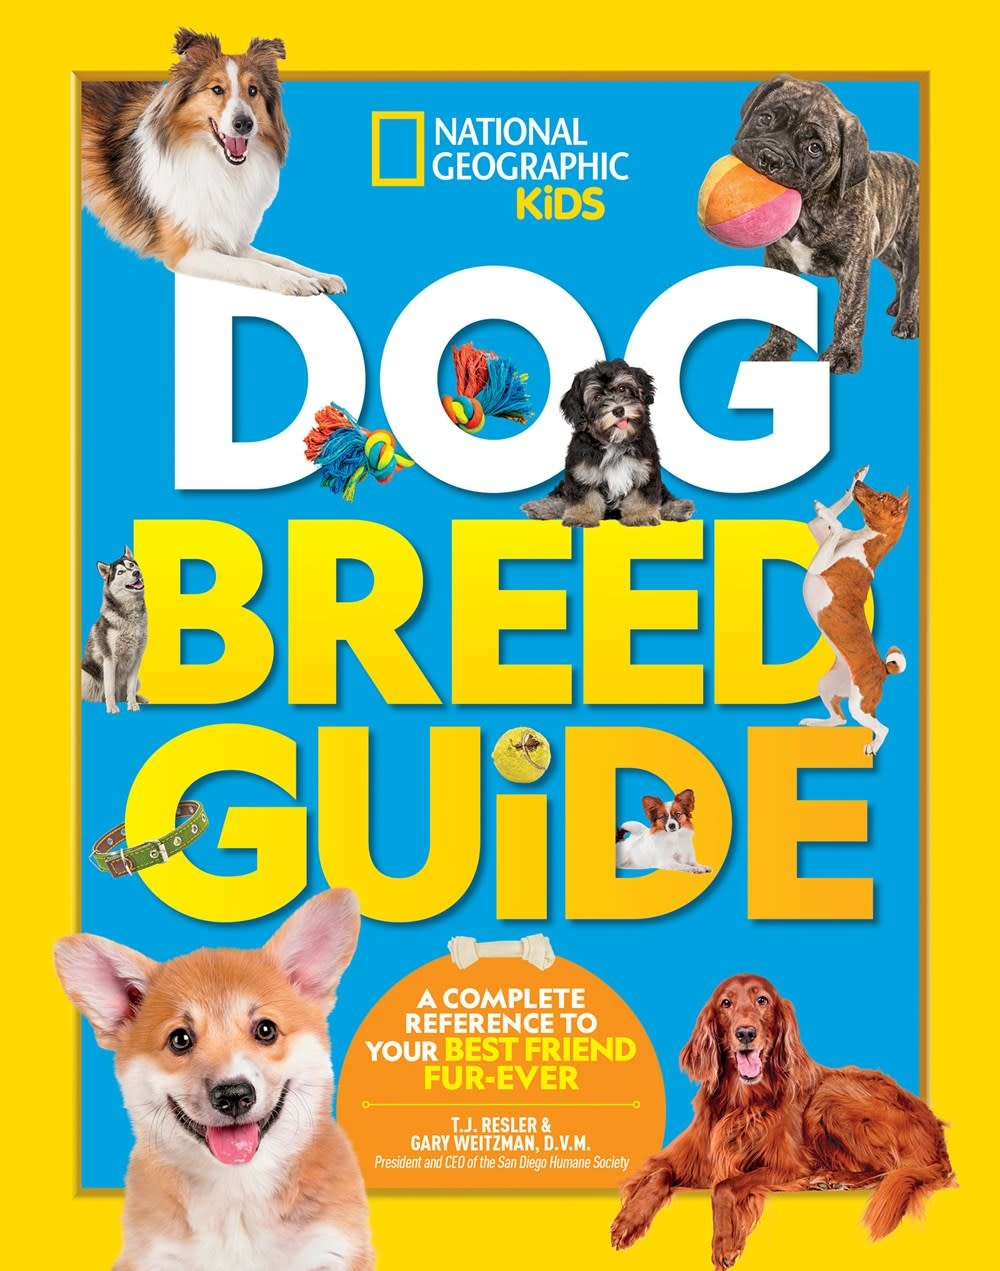 National Geographic Children's Books Nat Geo Kids: Dog Breed Guide